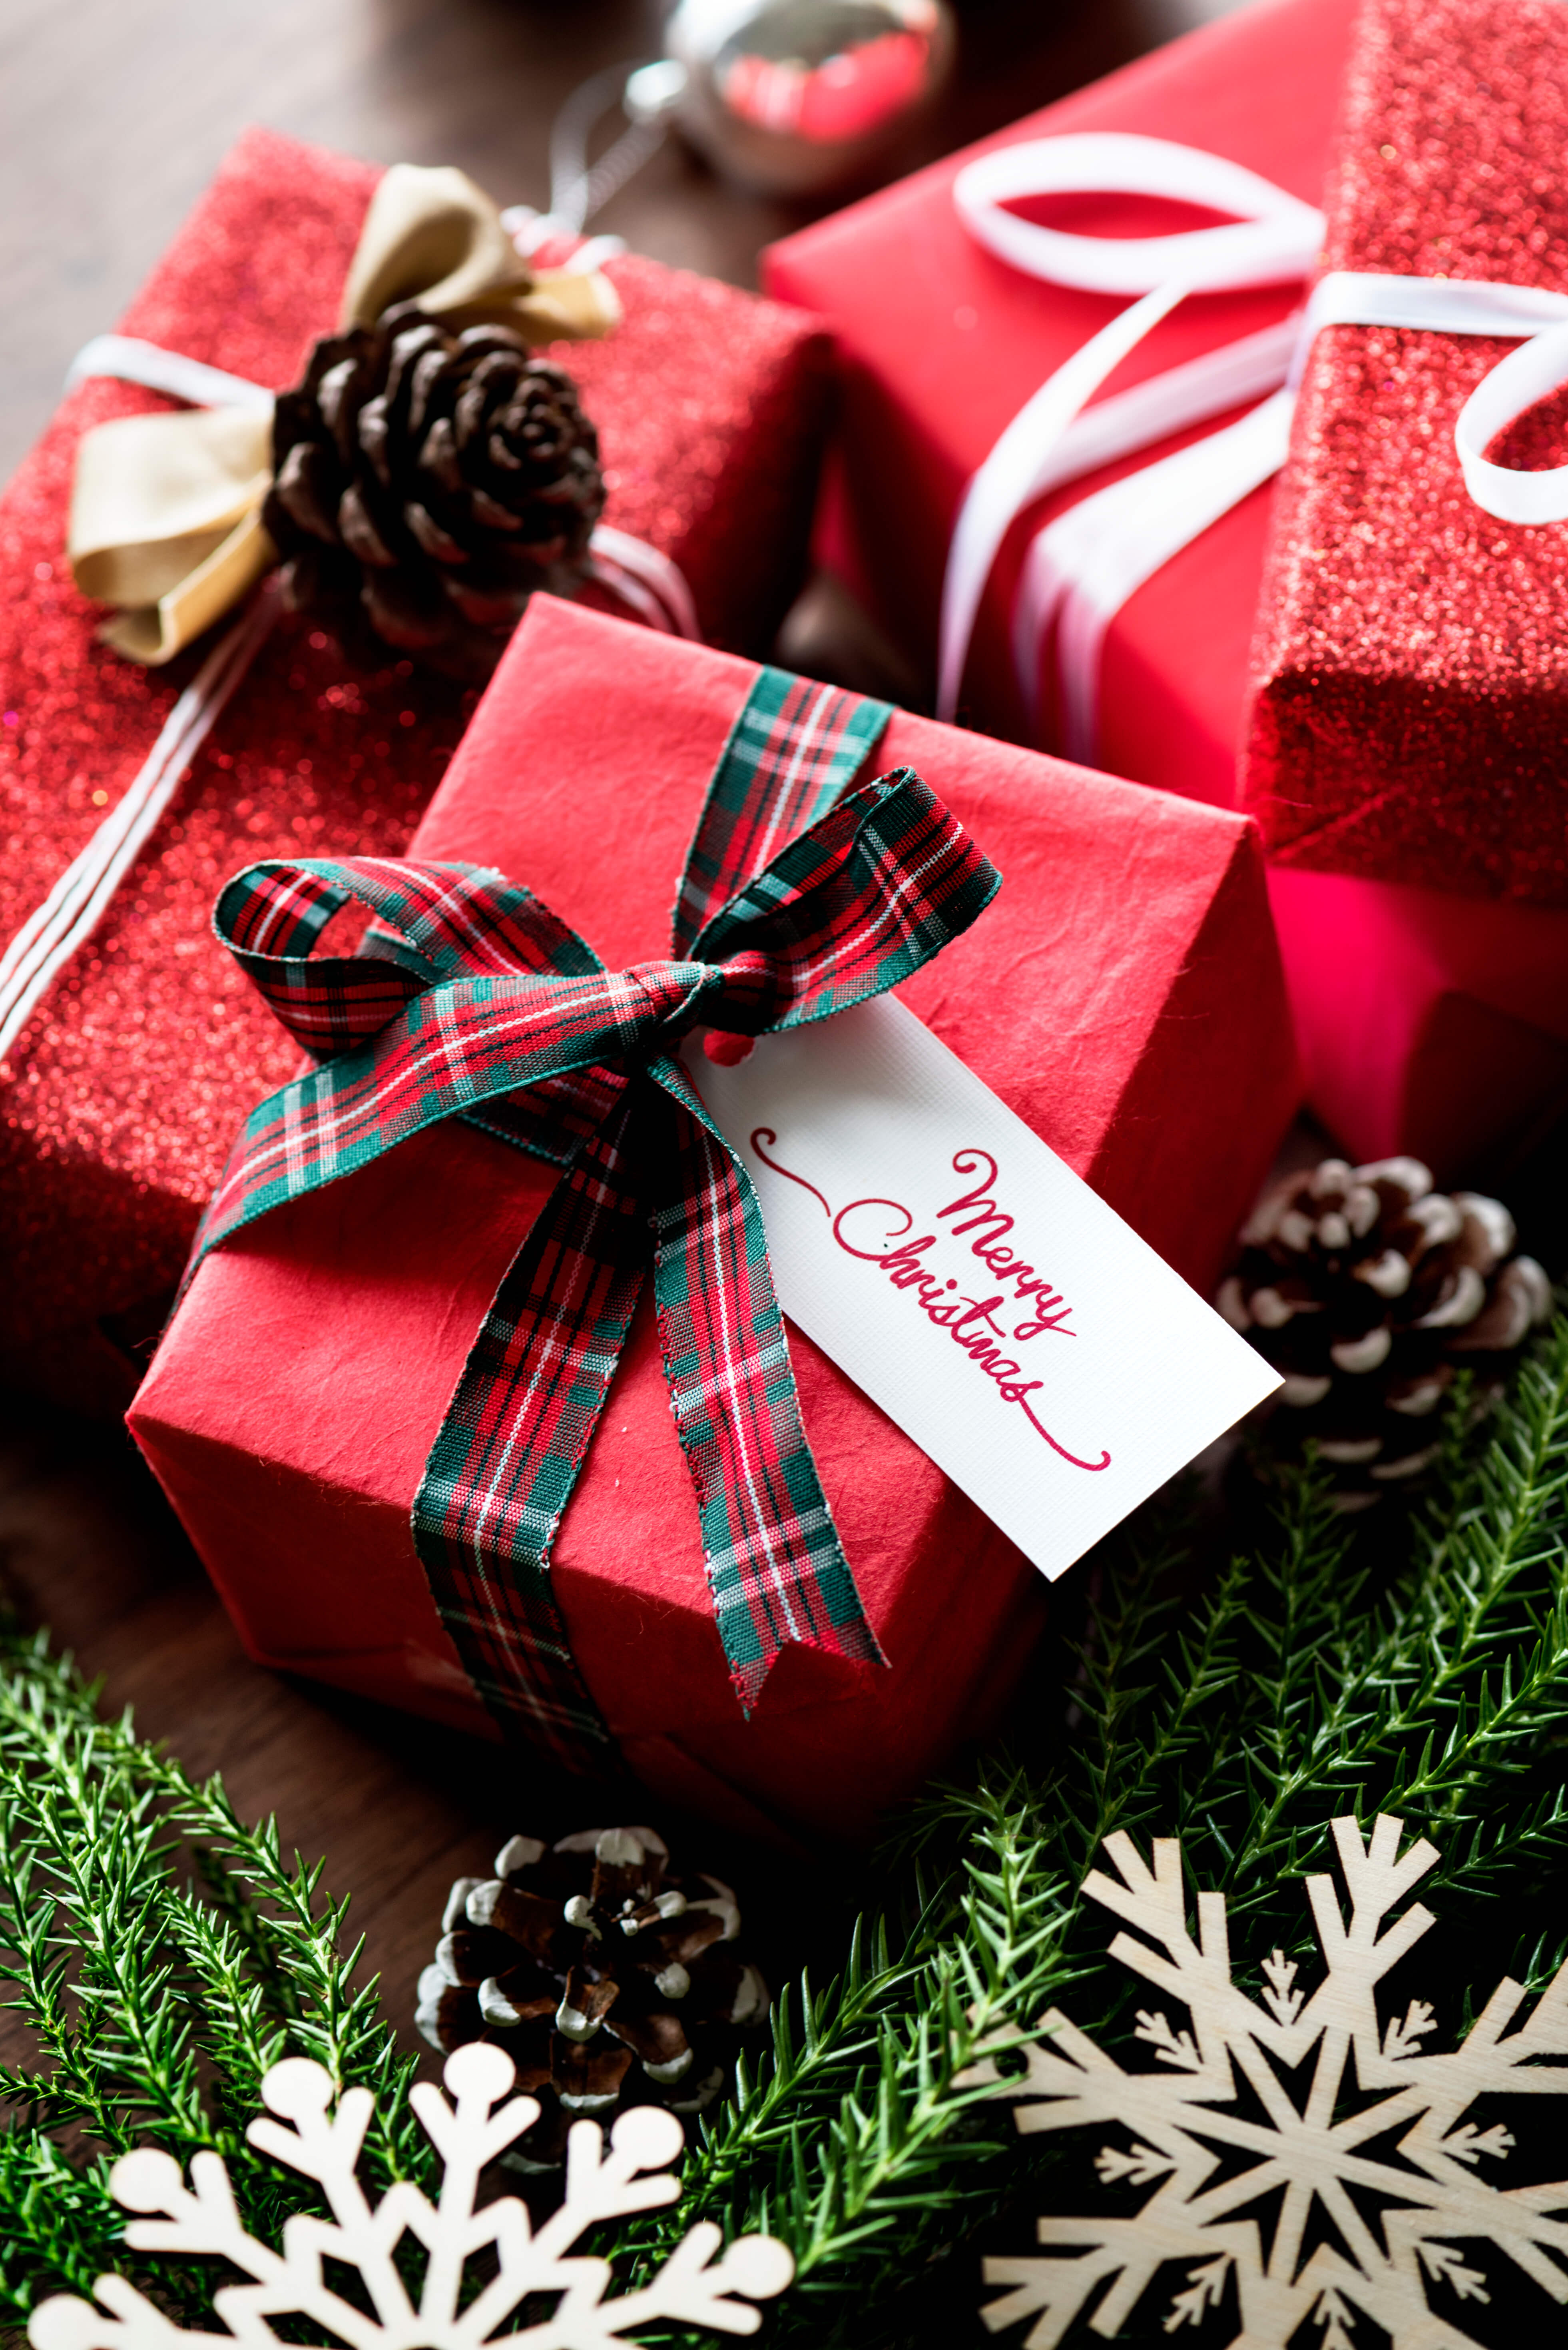 If You Have An Avid Reader On Your Christmas List Re In Luck Readers Are Easy Group To For And There So Many Diffe Gift Options